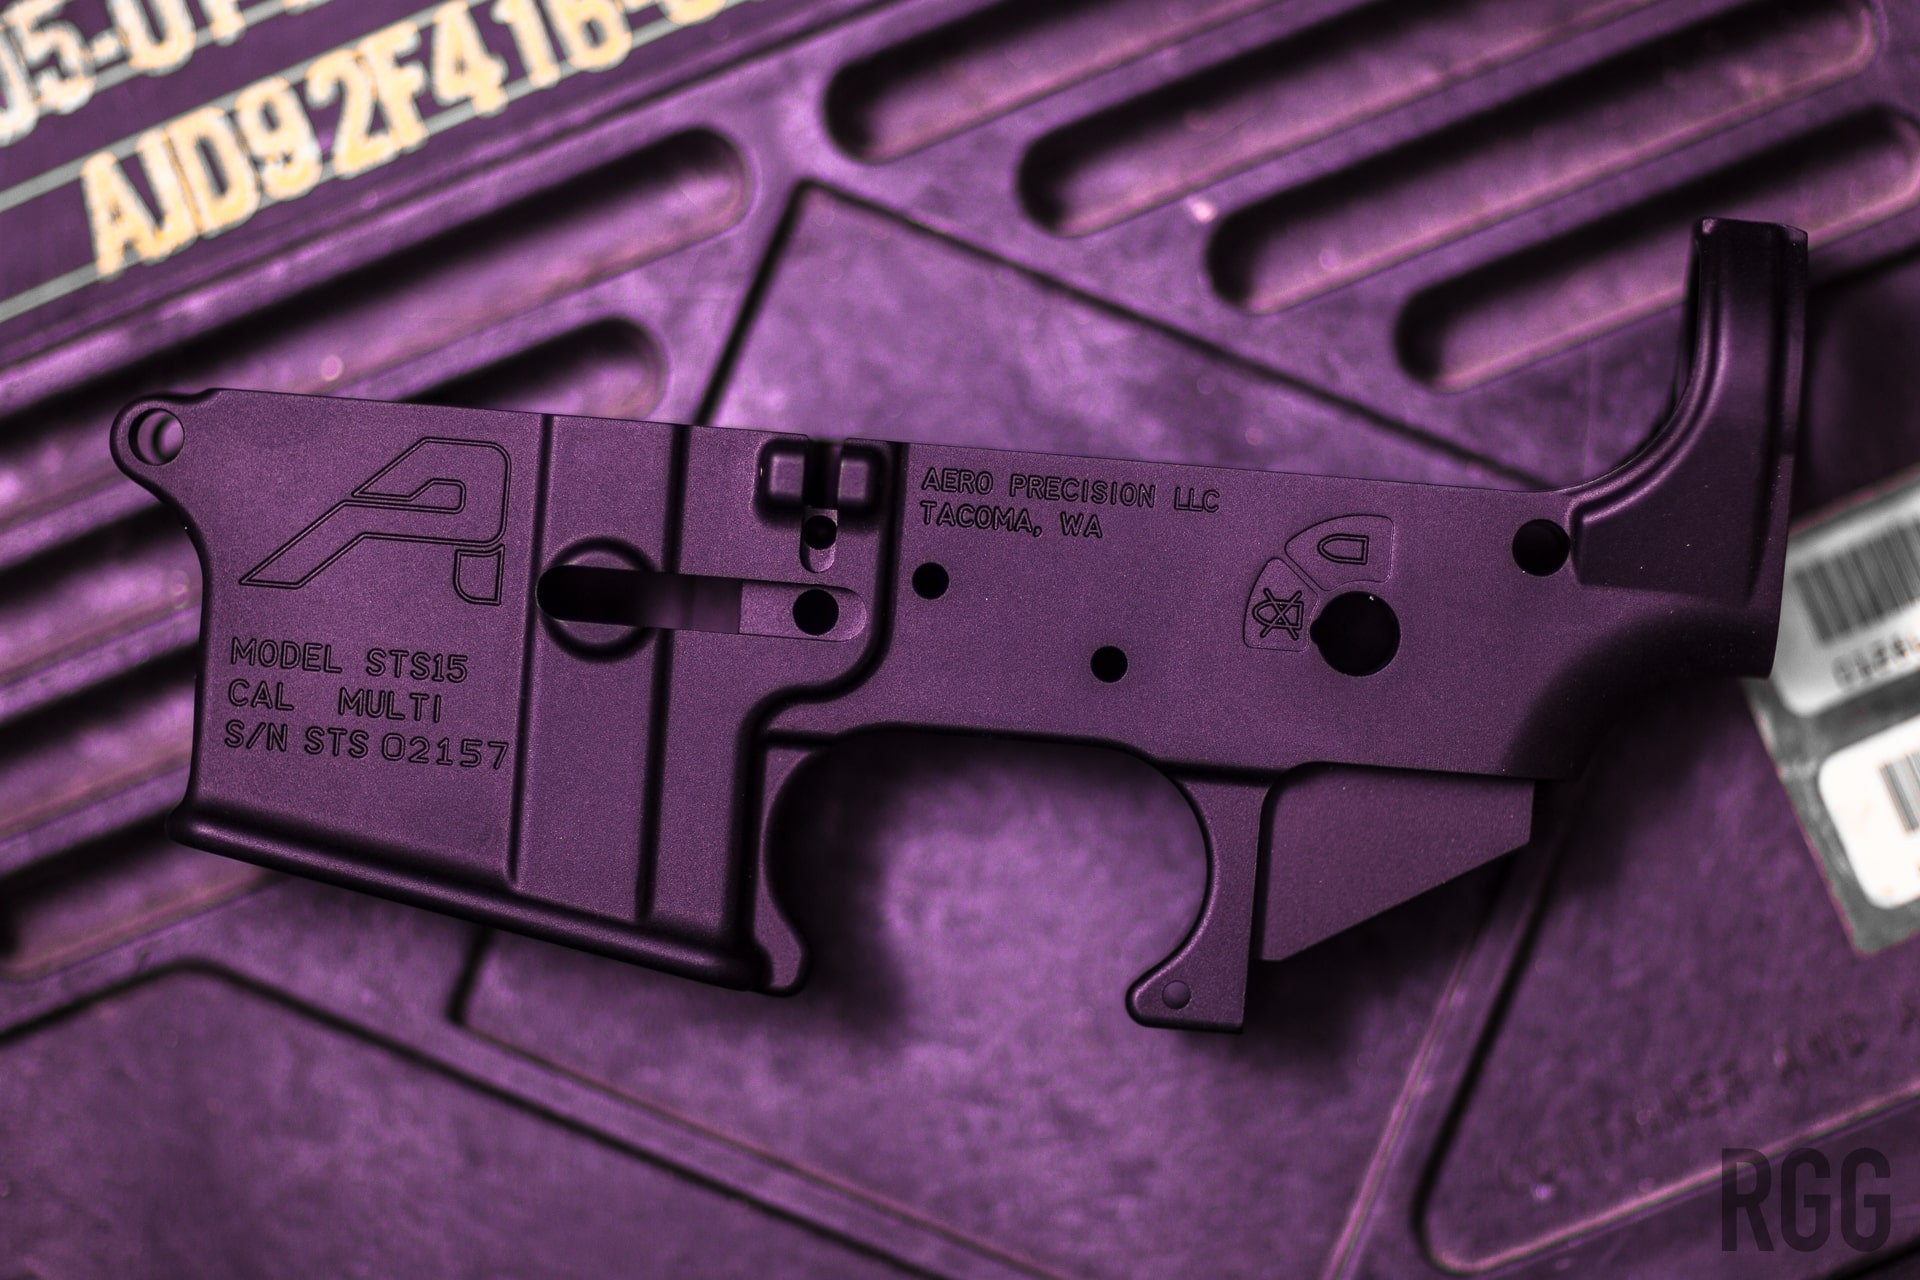 Aero Precision STS15 STS lower receiver